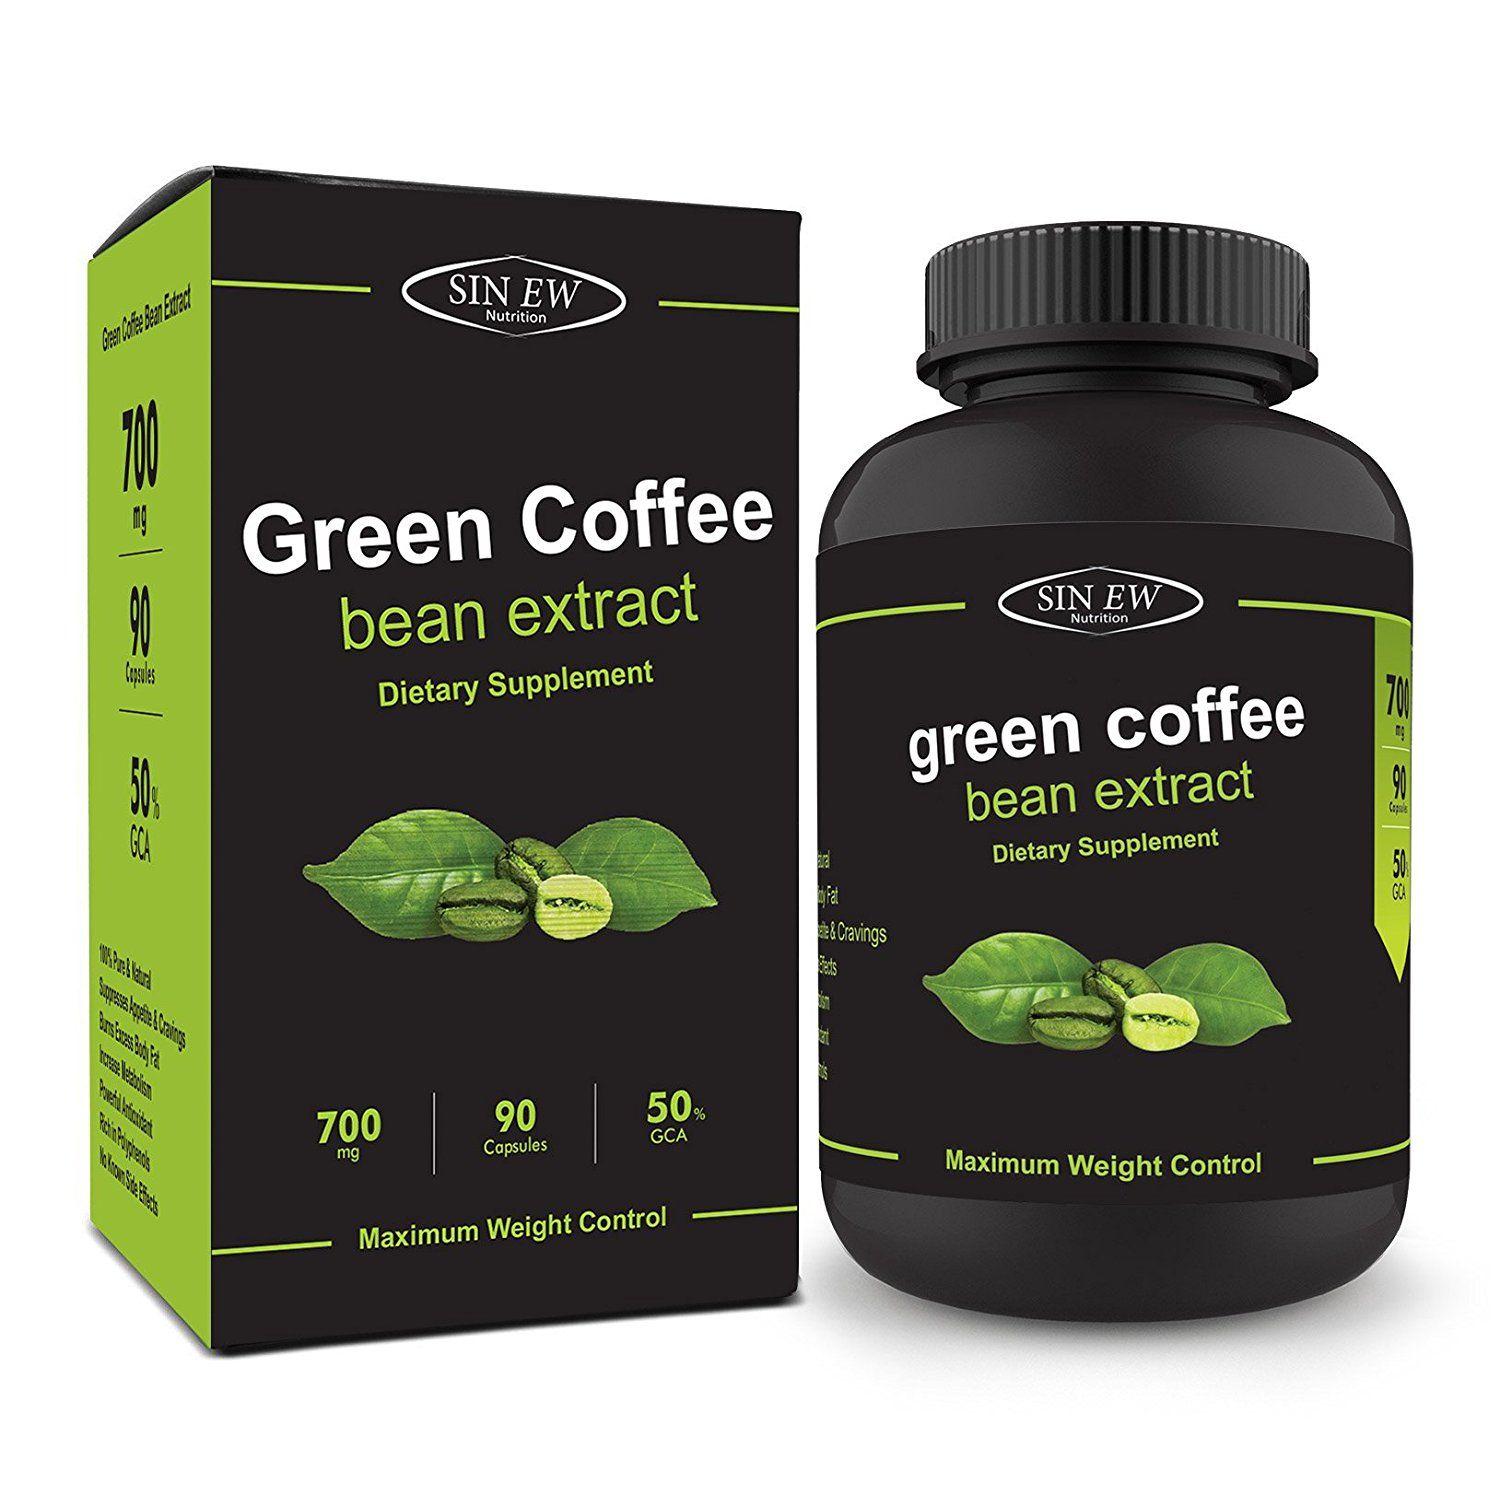 Sinew green coffee bean extract, has proven to be weight